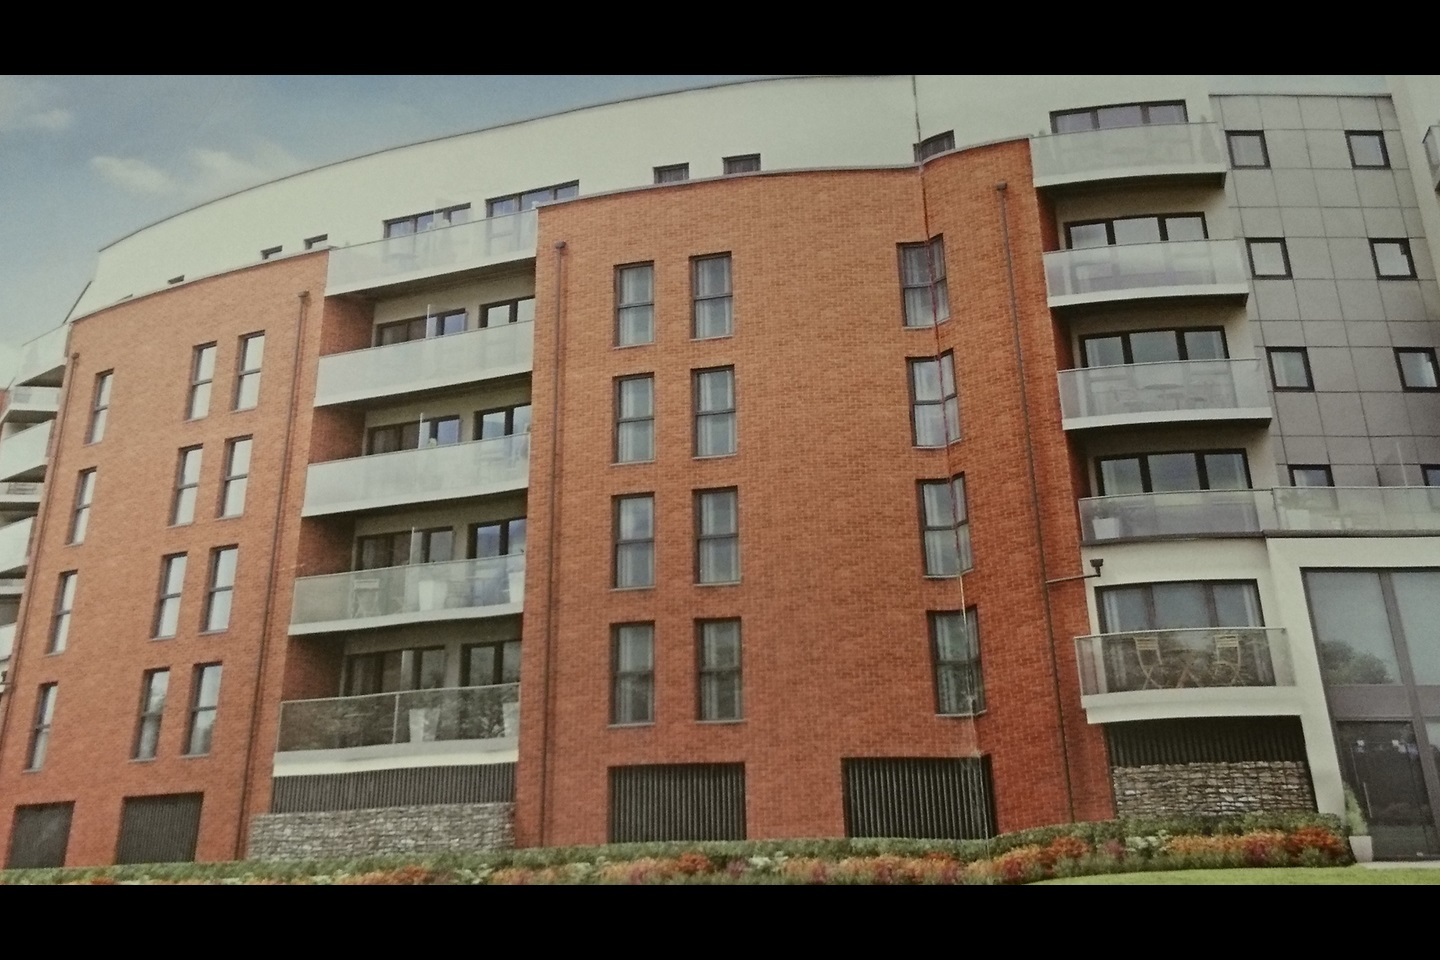 Dagenham - 2 Bed Flat, Chancellor Way, RM8 - To Rent Now ...